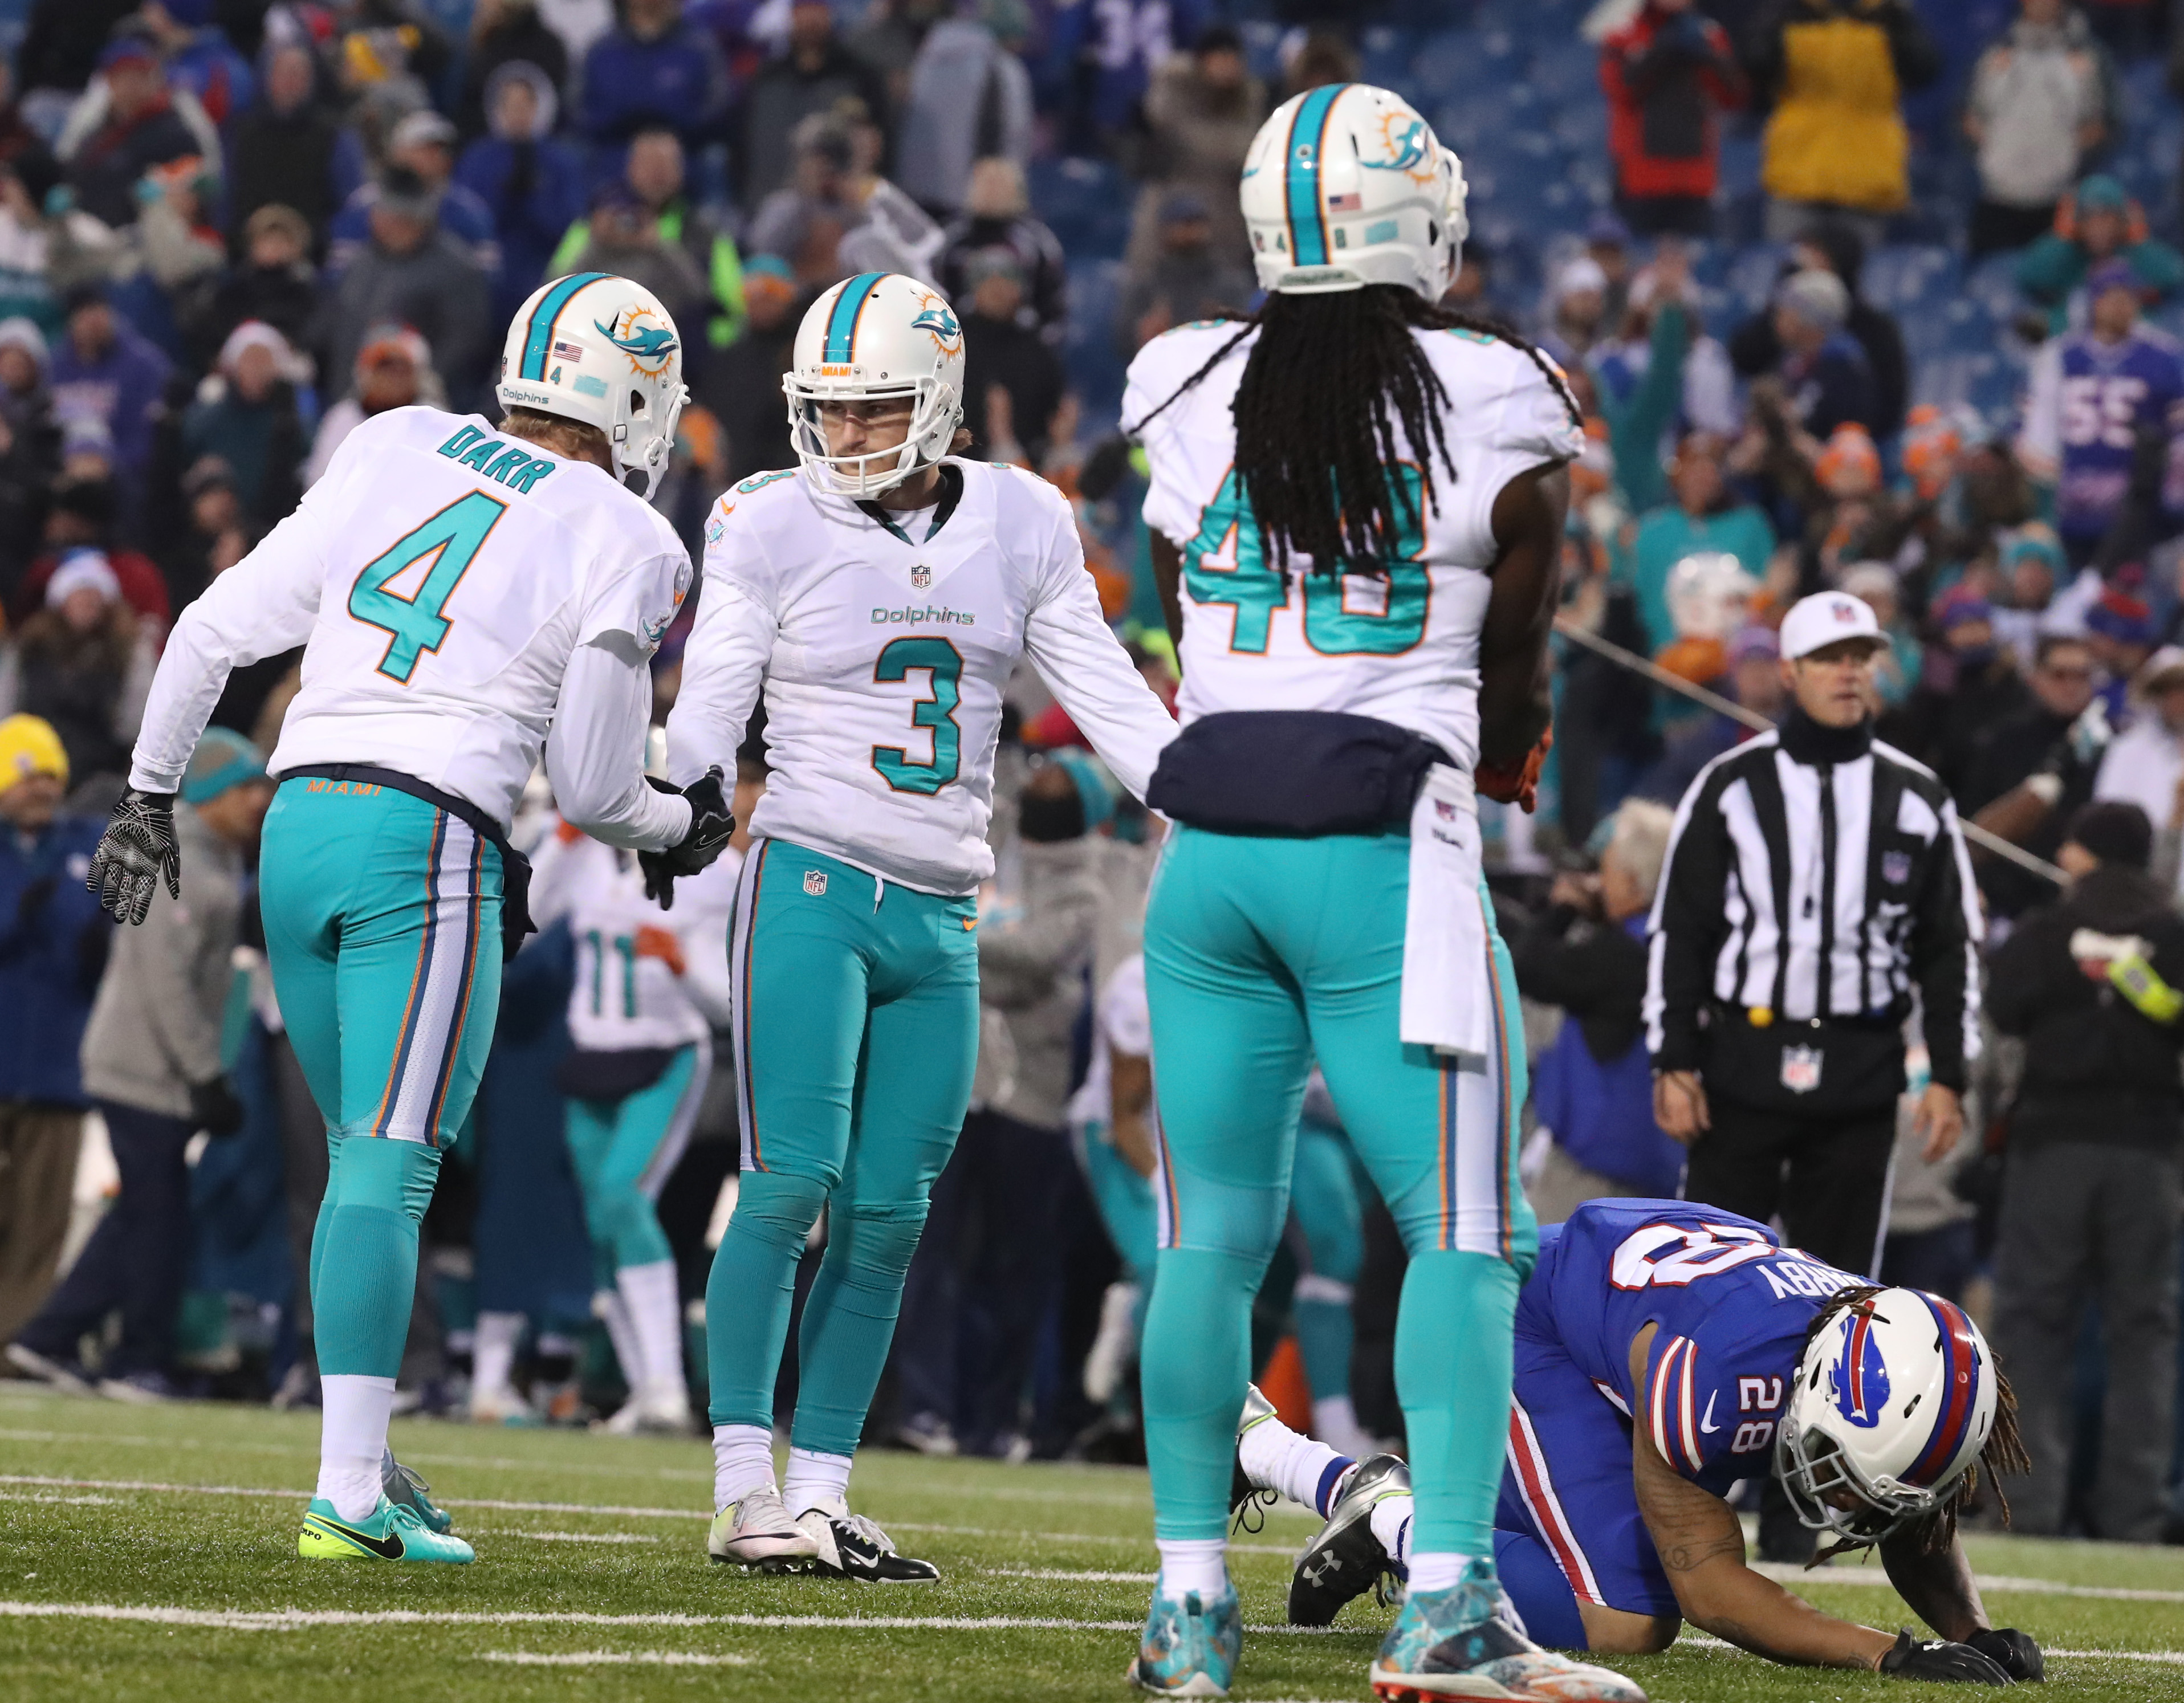 Miami Dolphins kicker Andrew Franks (3) kicks the game-winning field goal in overtime. On his game-tying kick in the fourth quarter, the Bills attempted to call a timeout but were not granted one.  (James P. McCoy/Buffalo News)